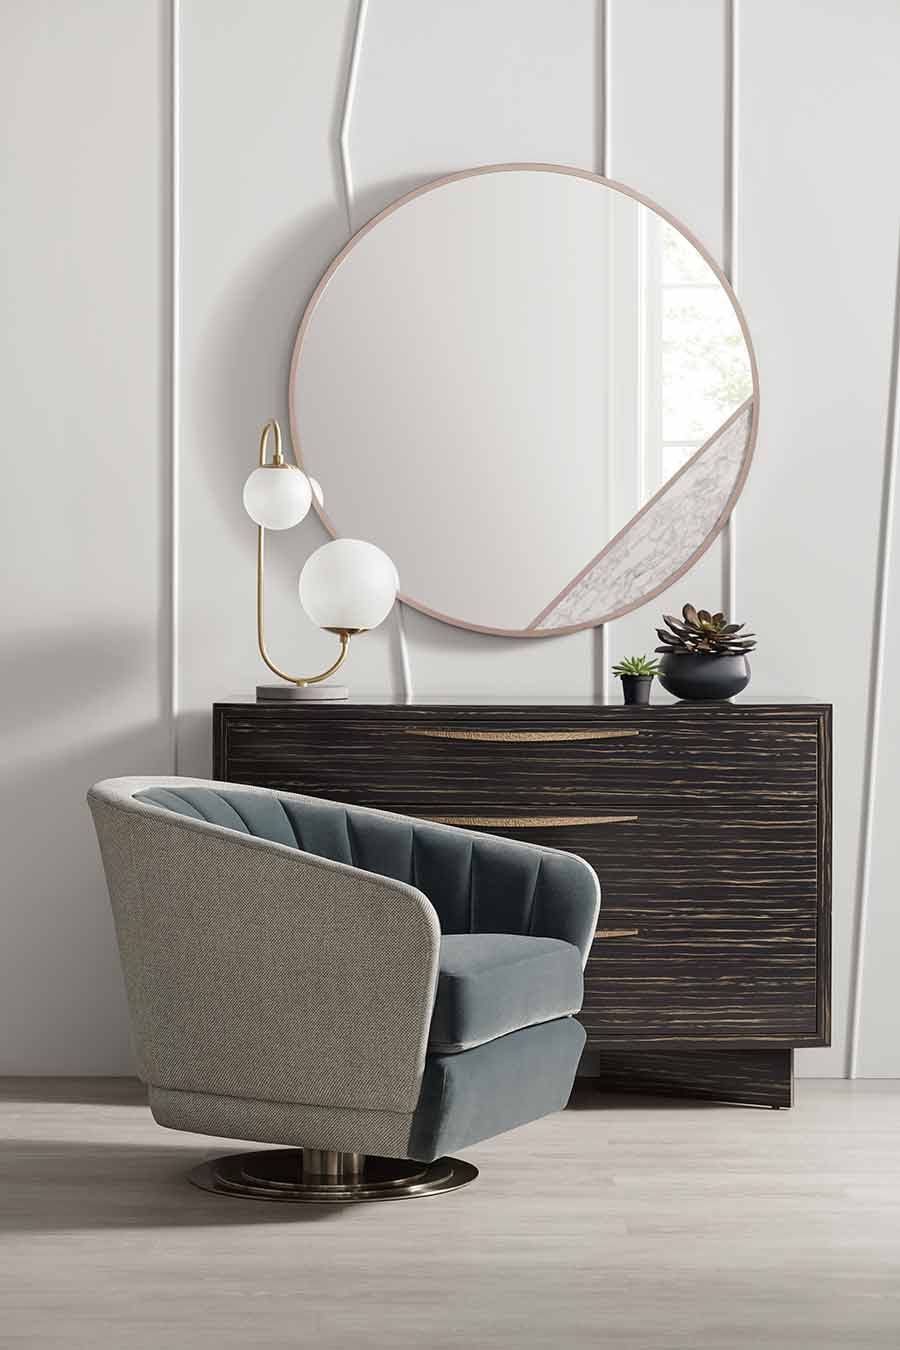 Concentric Swivel Chair Modern Edge Collection Living Areas | Contemporary Modern Luxury Exclusive Designer Handcrafted Furniture | Sandton Johannesburg